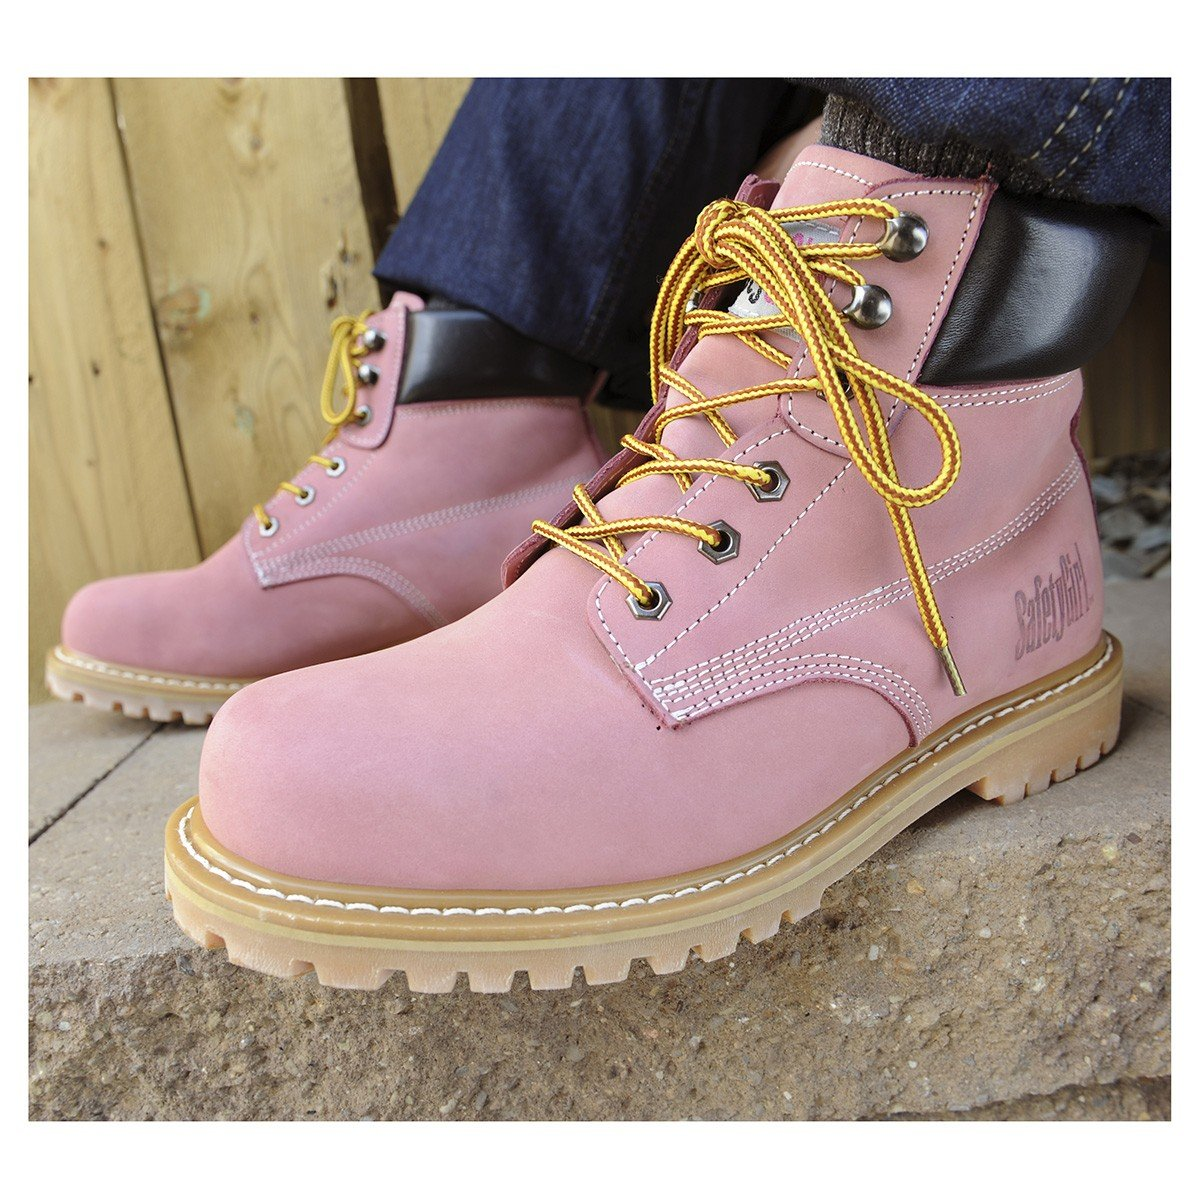 Safety Girl GS003-Lt Pink-9M Steel Toe Work Boots - Light Pink - 9M, English, Capacity, Volume, Leather, 9M, Pink () by Safety Girl (Image #9)